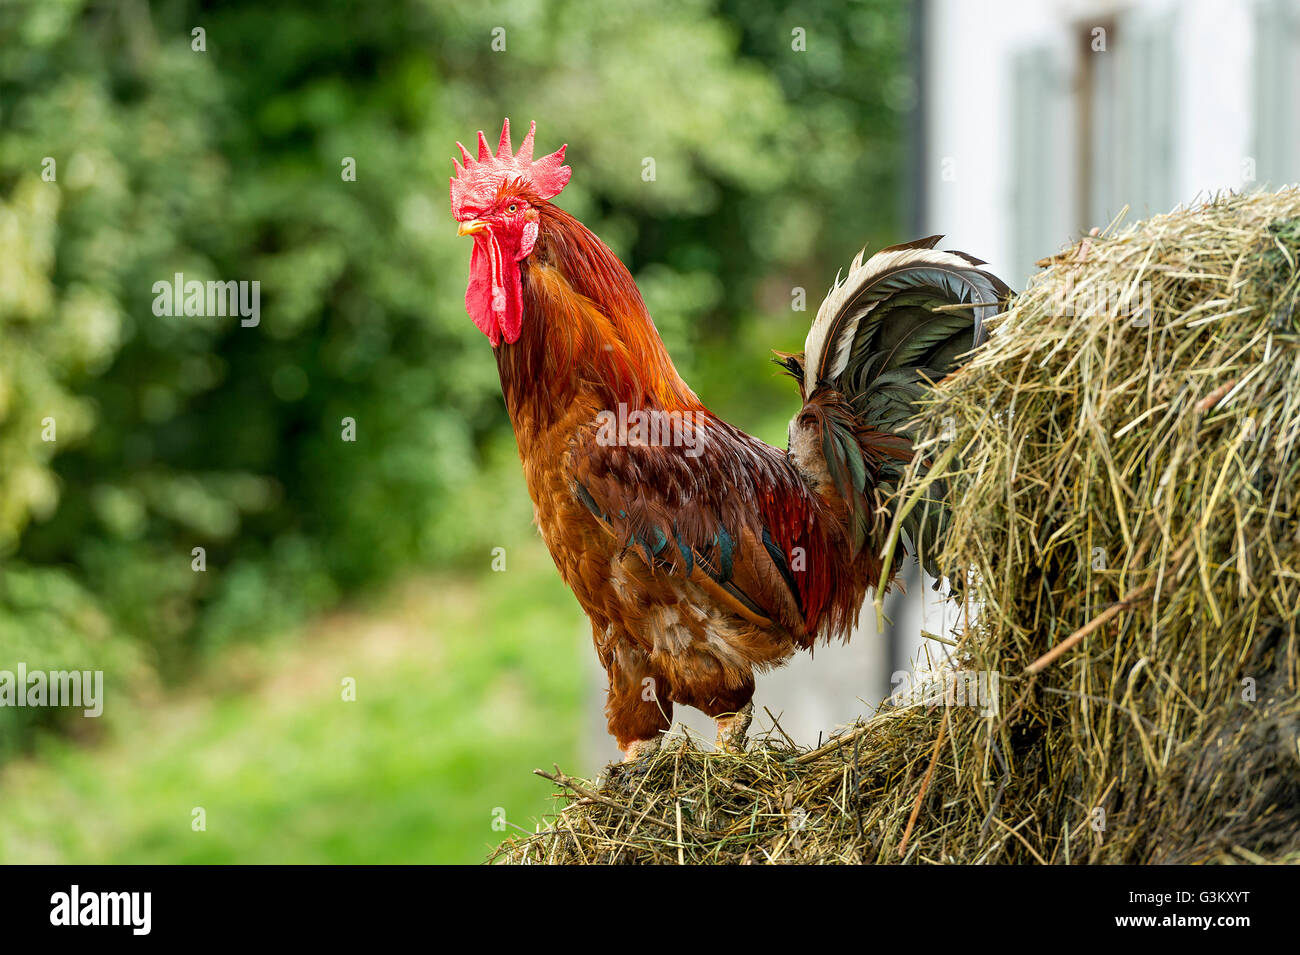 Chicken (Gallus gallus domesticus), rooster on dung pile, Upper Bavaria, Bavaria, Germany - Stock Image